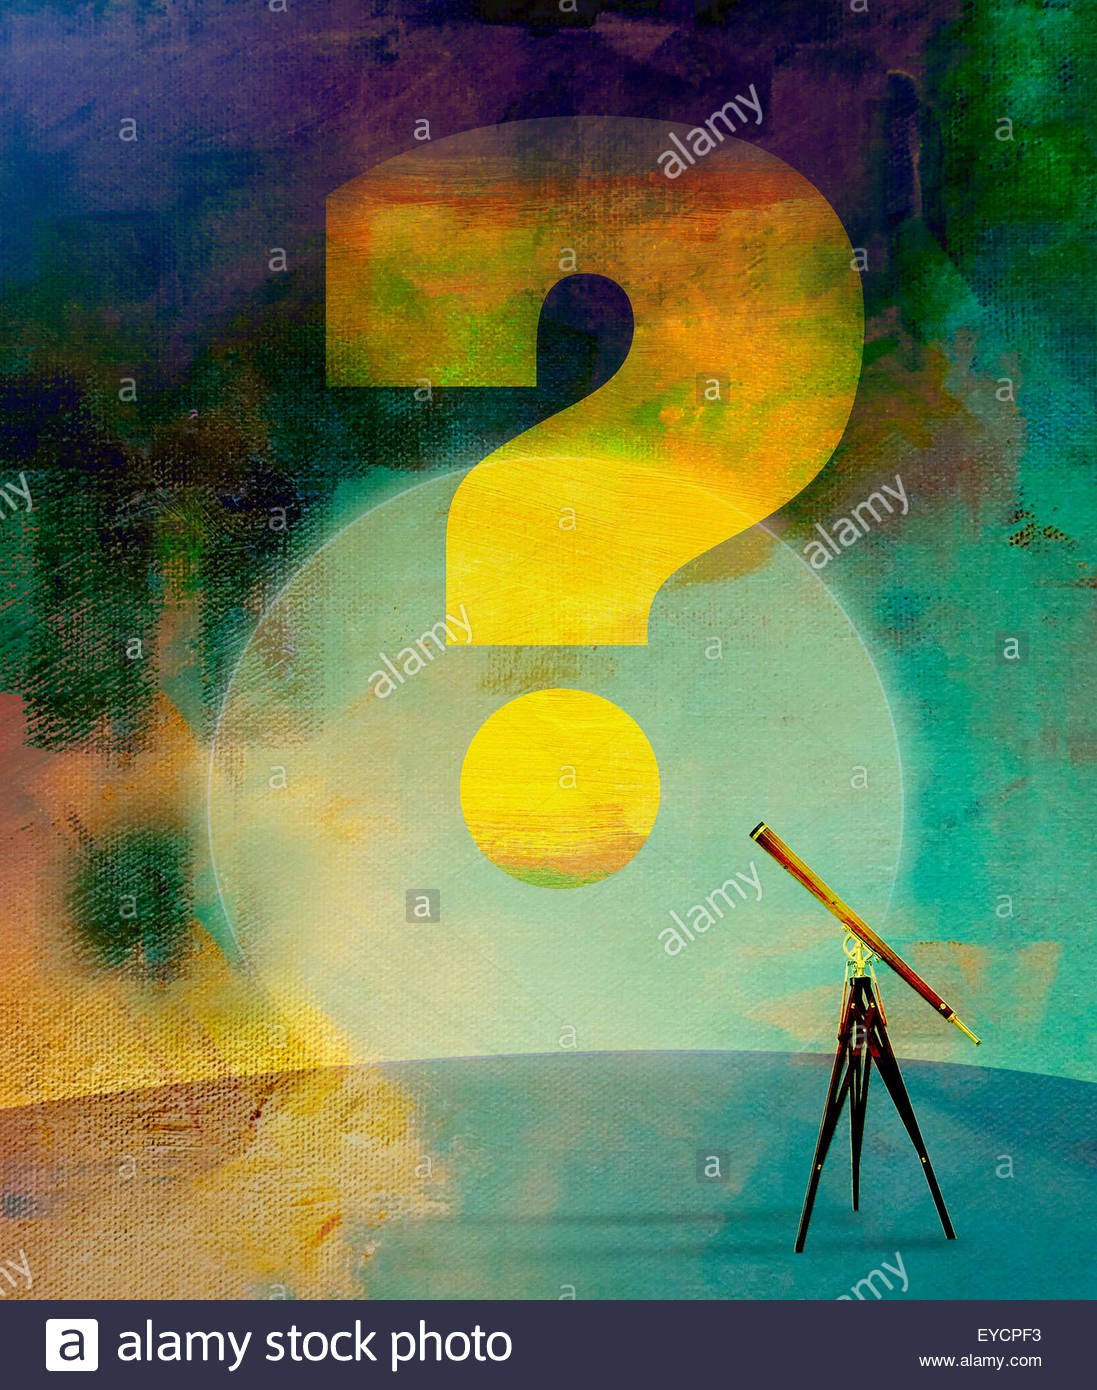 Telescope focusing on large question mark - Stock Image